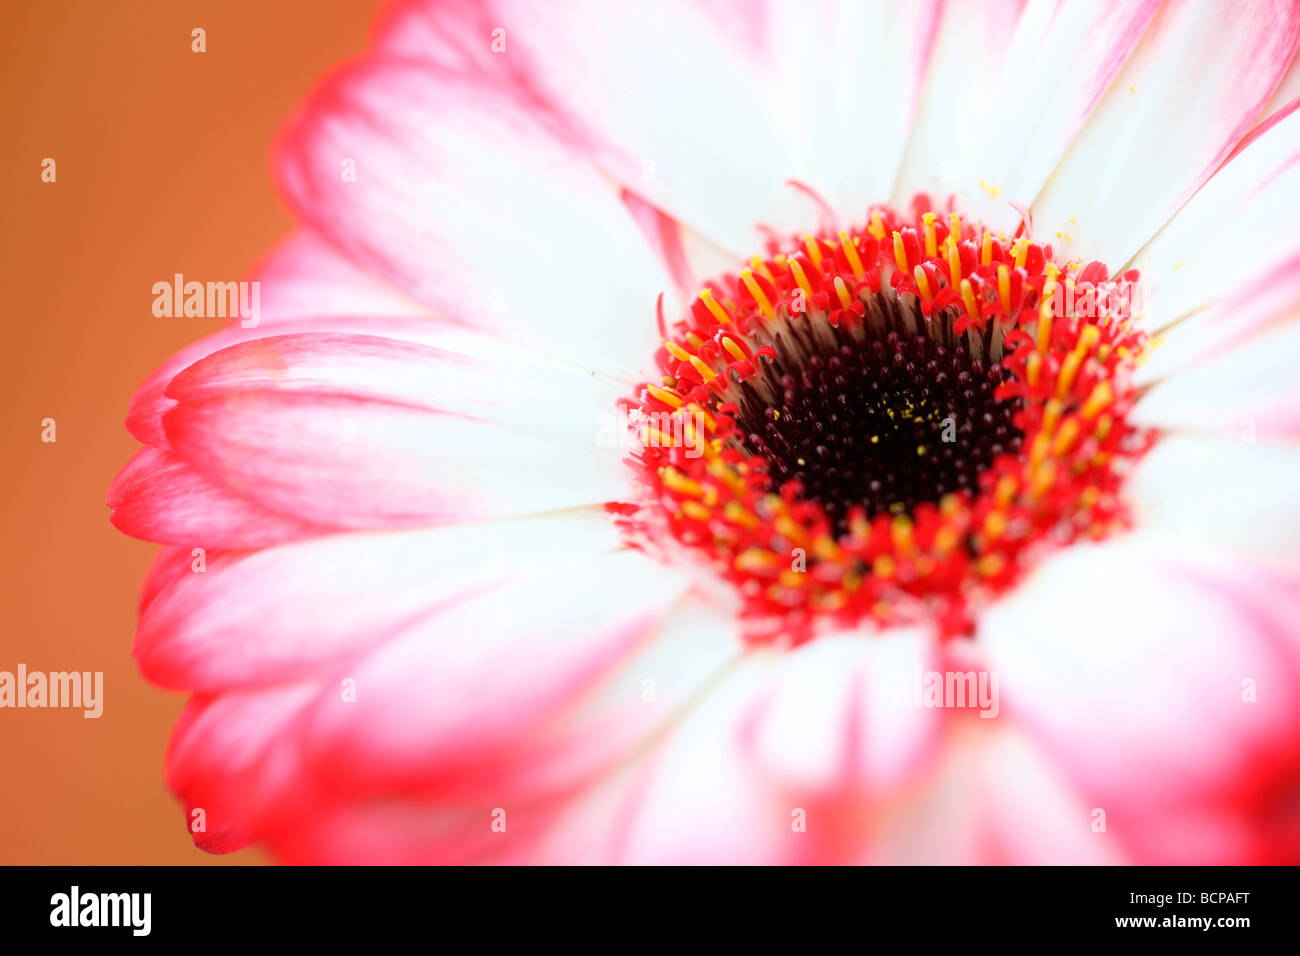 fresh and pure contemporary image of a red tipped gerbera fine art photography Jane Ann Butler Photography JABP368 - Stock Image